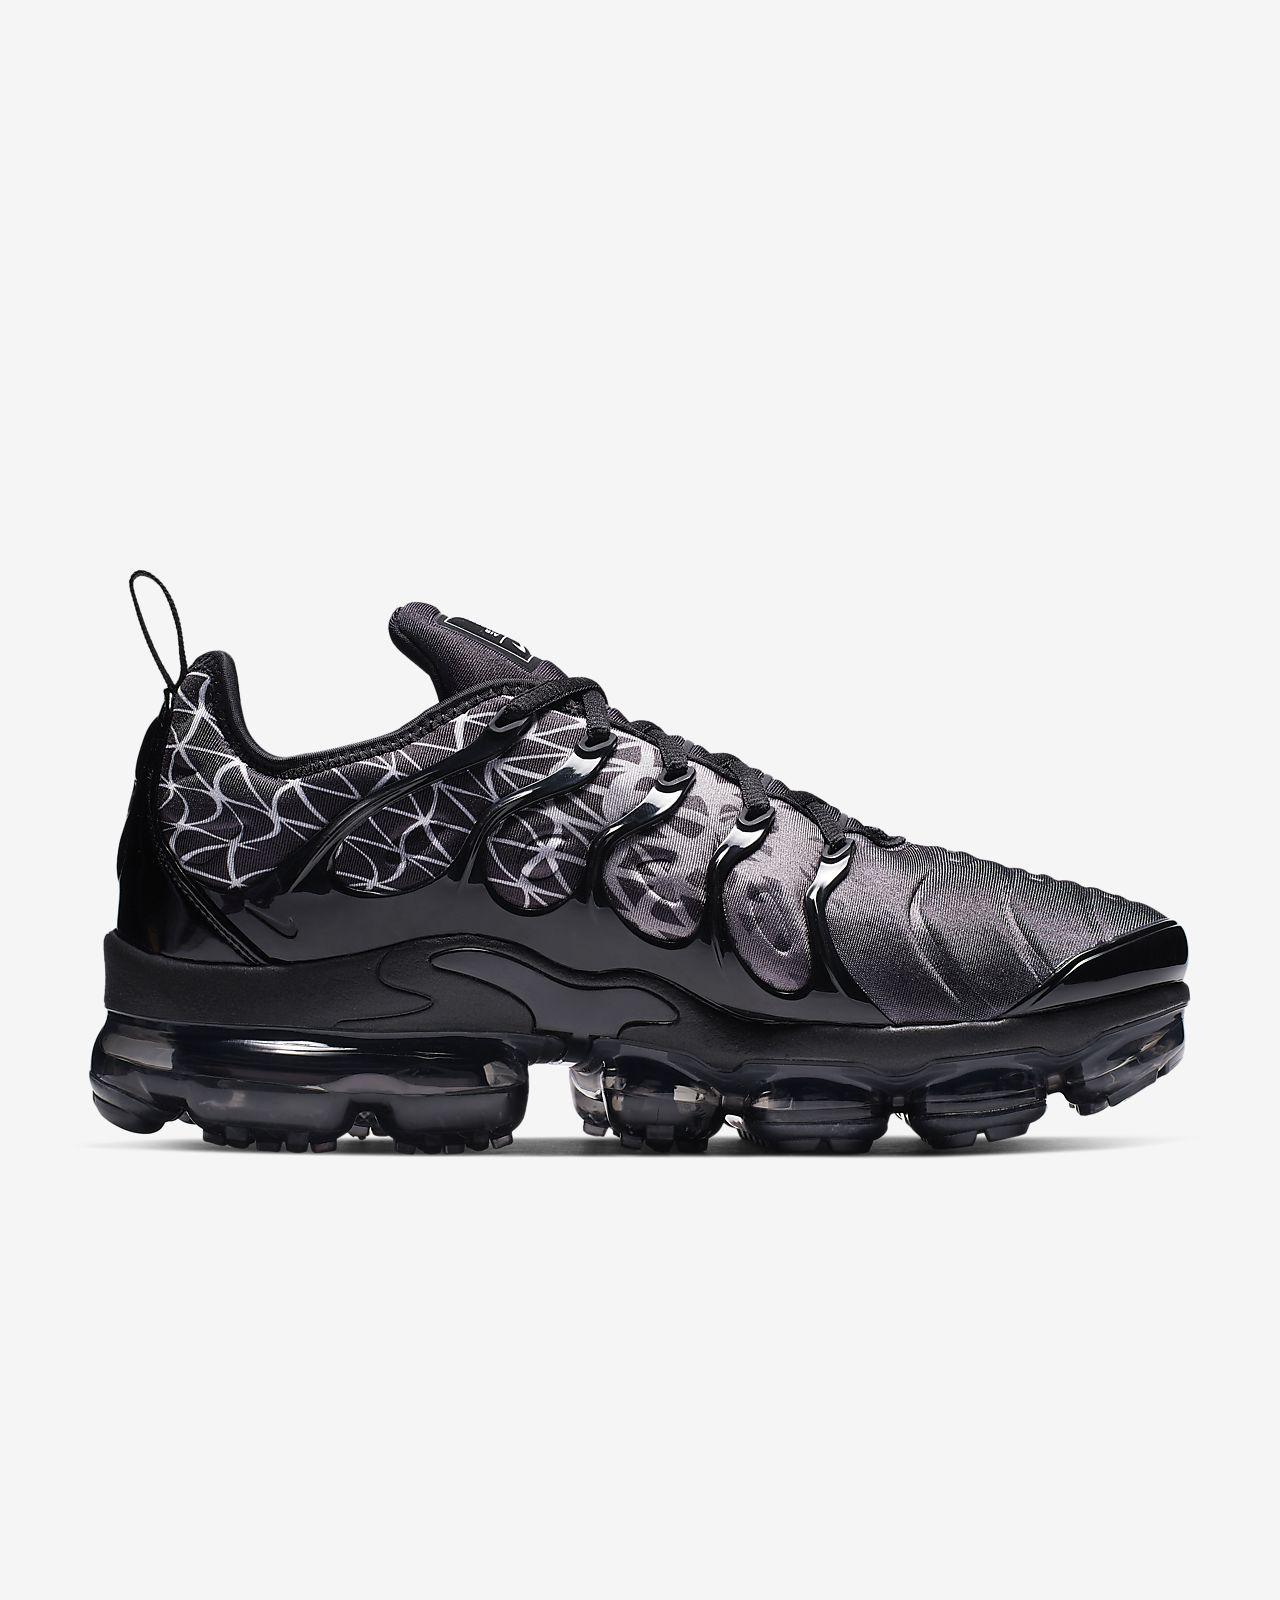 super popular 0e691 2cfe9 ... Nike Air VaporMax Plus Men s Shoe